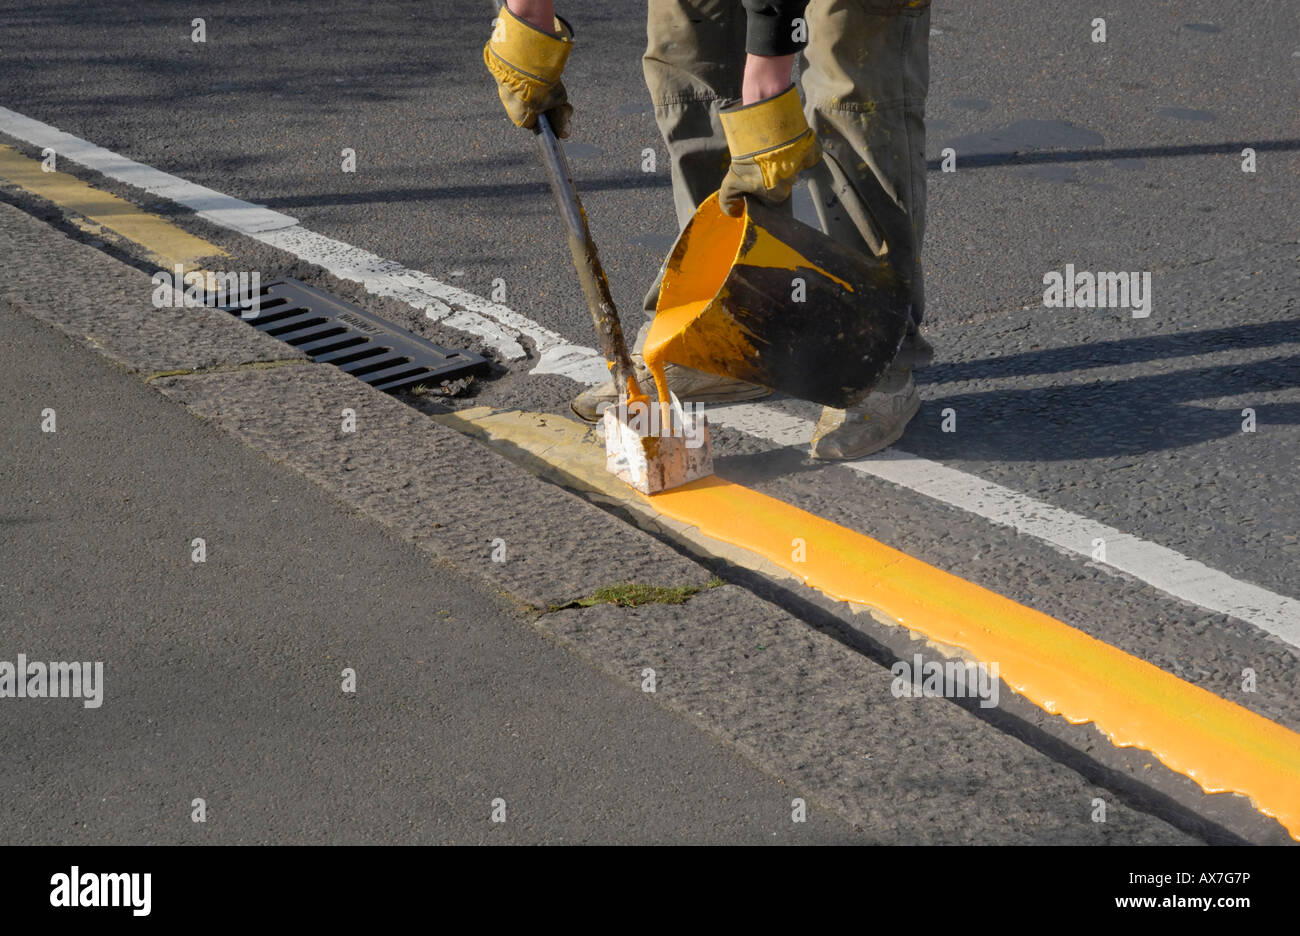 Hand painting yellow line on road with kettle of hot paint and marking tool, Cheam, south London, Surrey, EnglandStock Photo